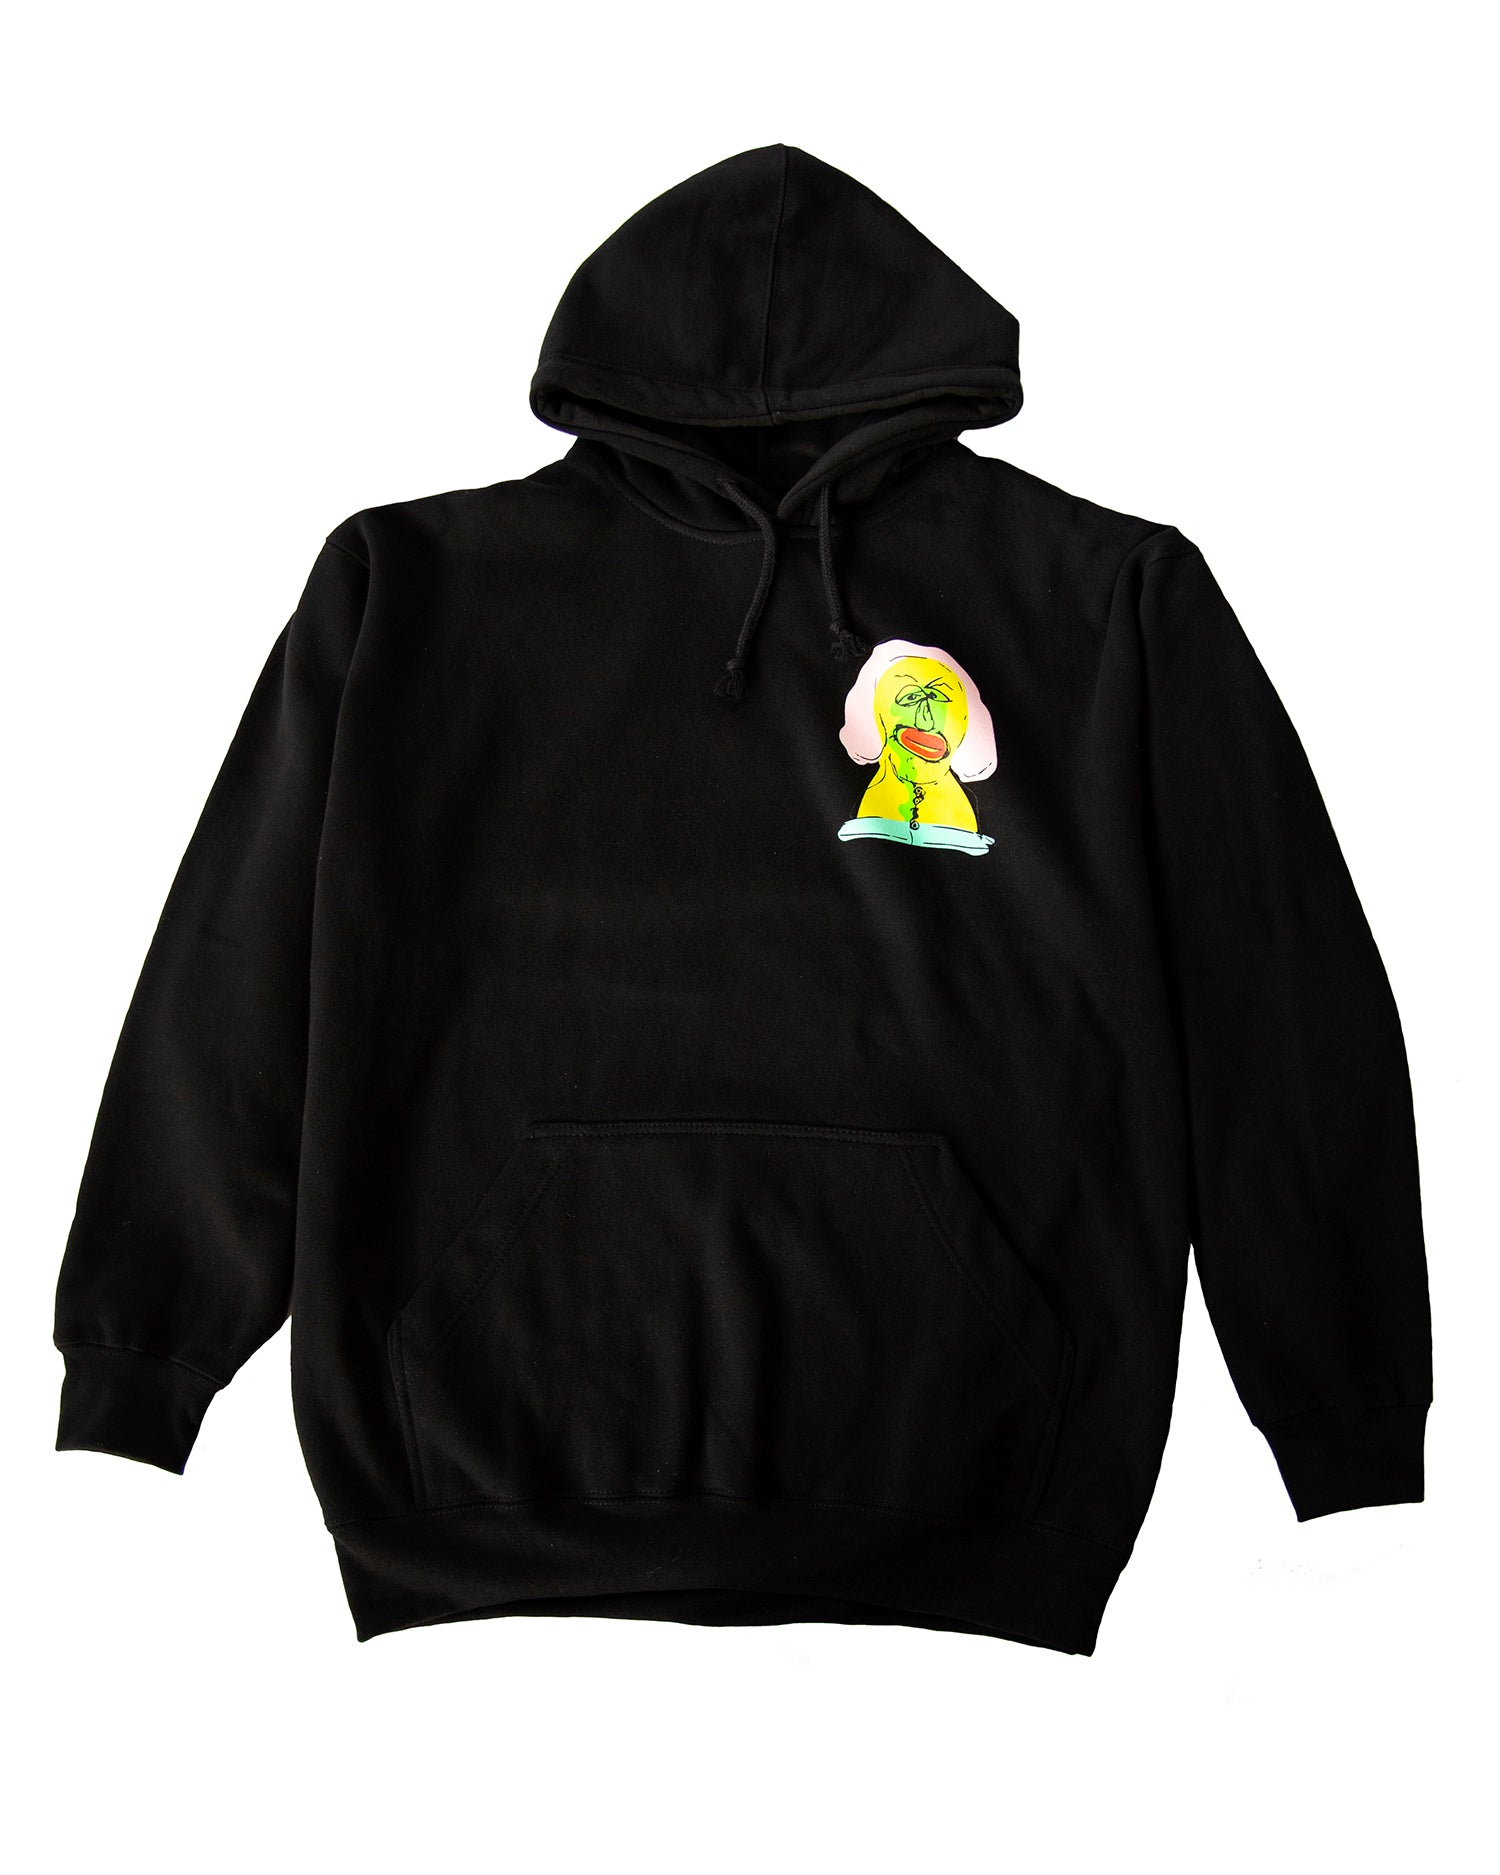 Nick Waplington Limited edition Hoodie